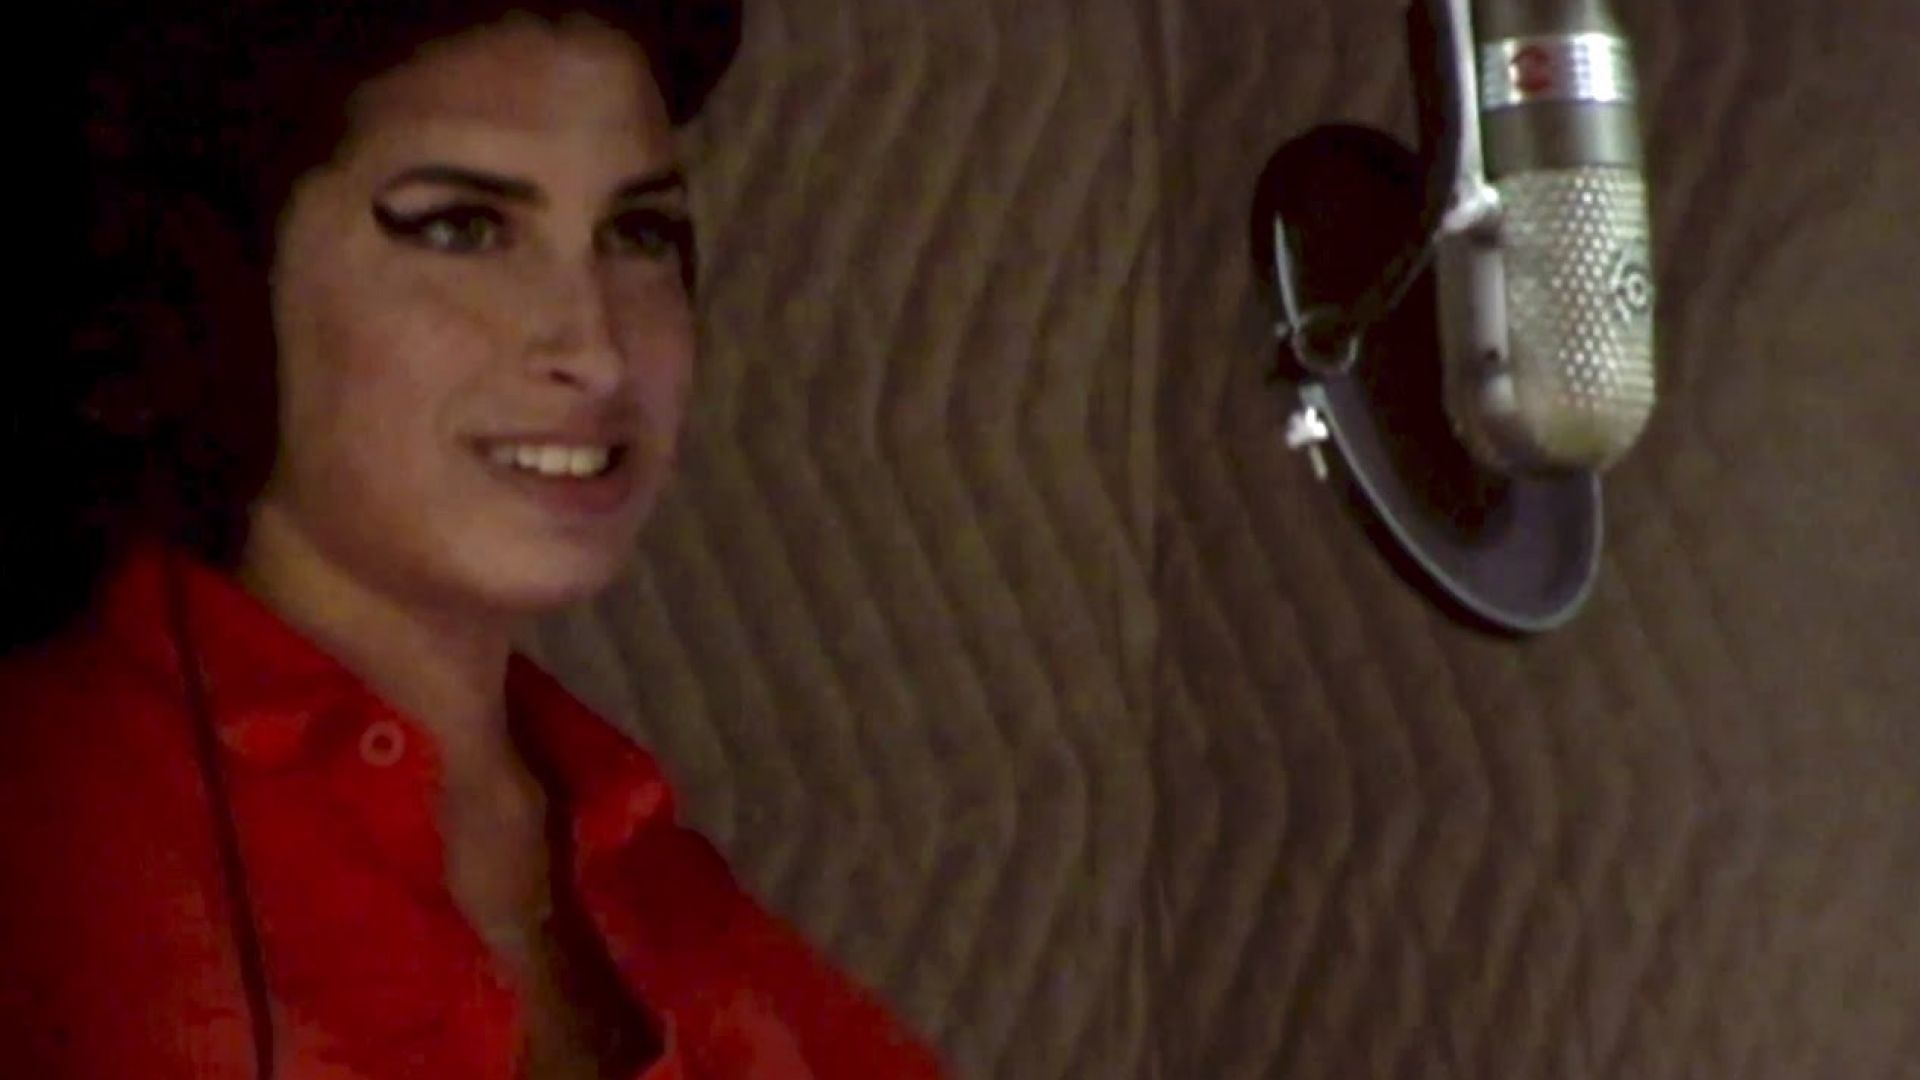 Amy Winehouse sings 'Back to Black' during 2006 recording, i